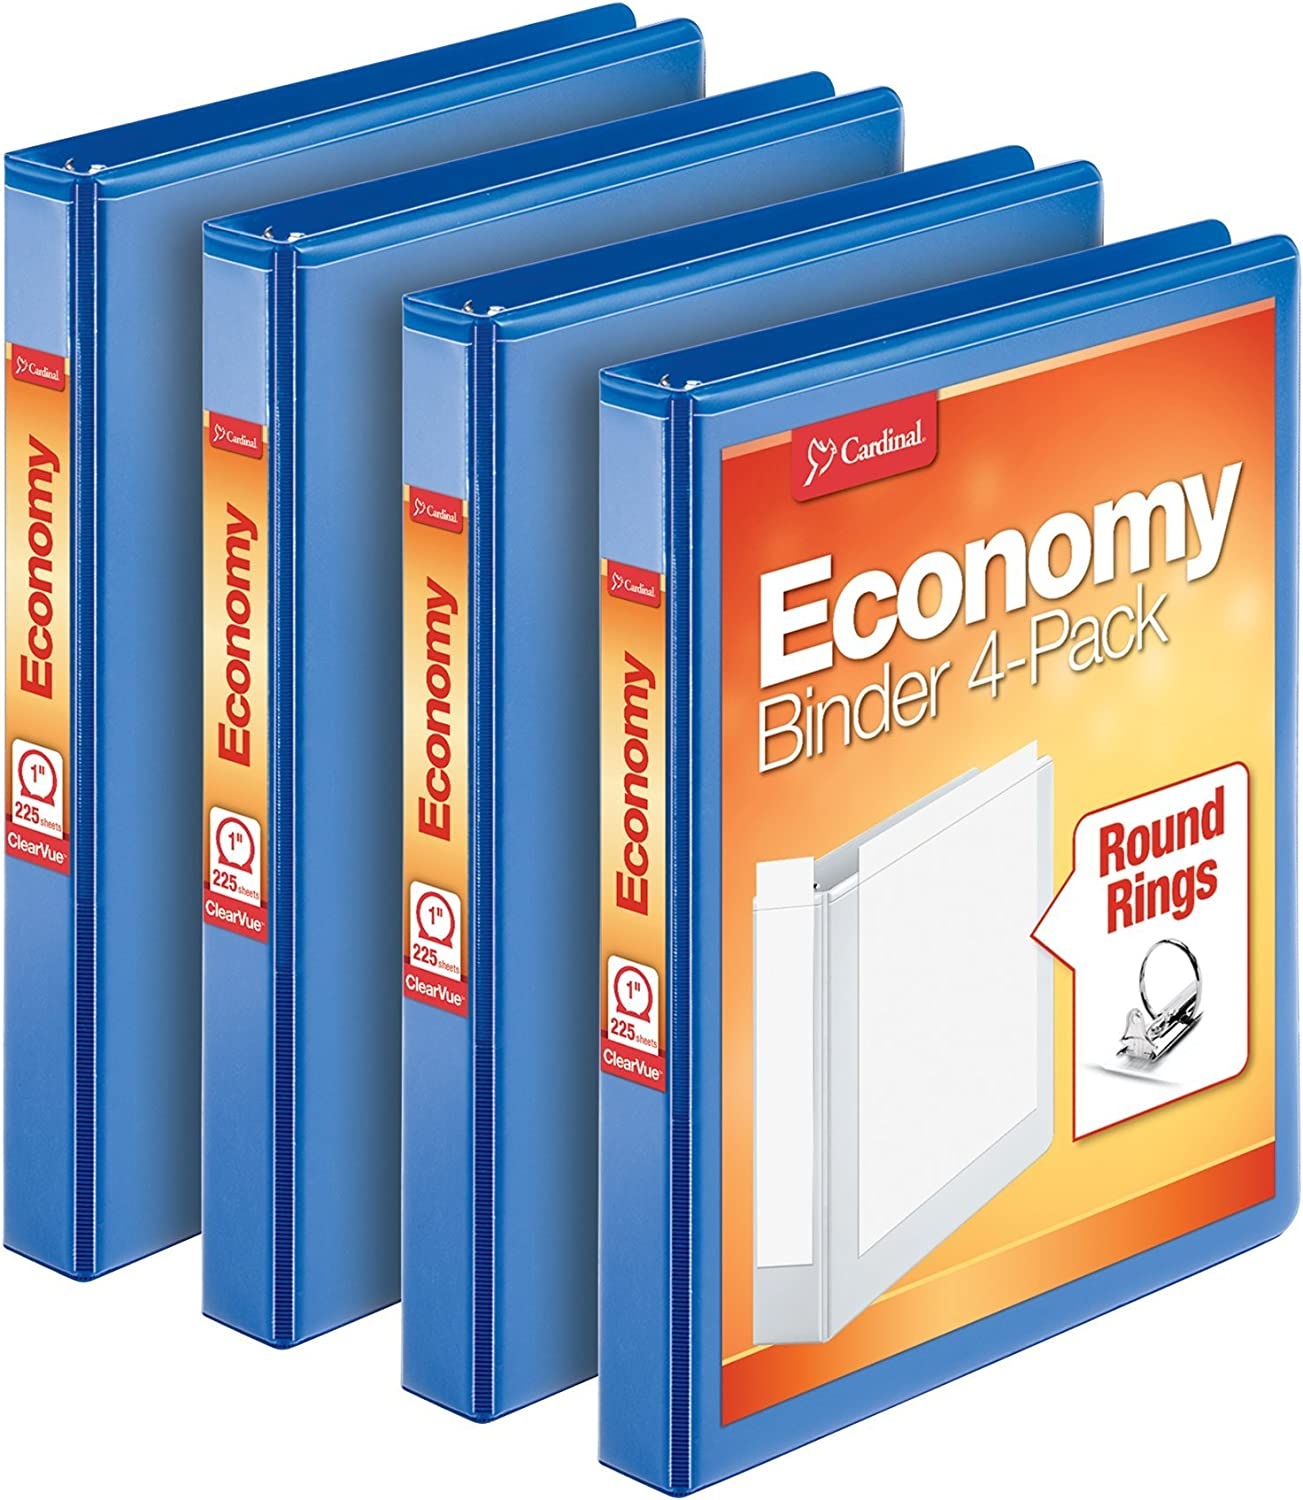 Cardinal 3 Ring Binder, 1 Inch, Round Ring, Blue, 4 Pack, Holds 225 Sheets (79511)